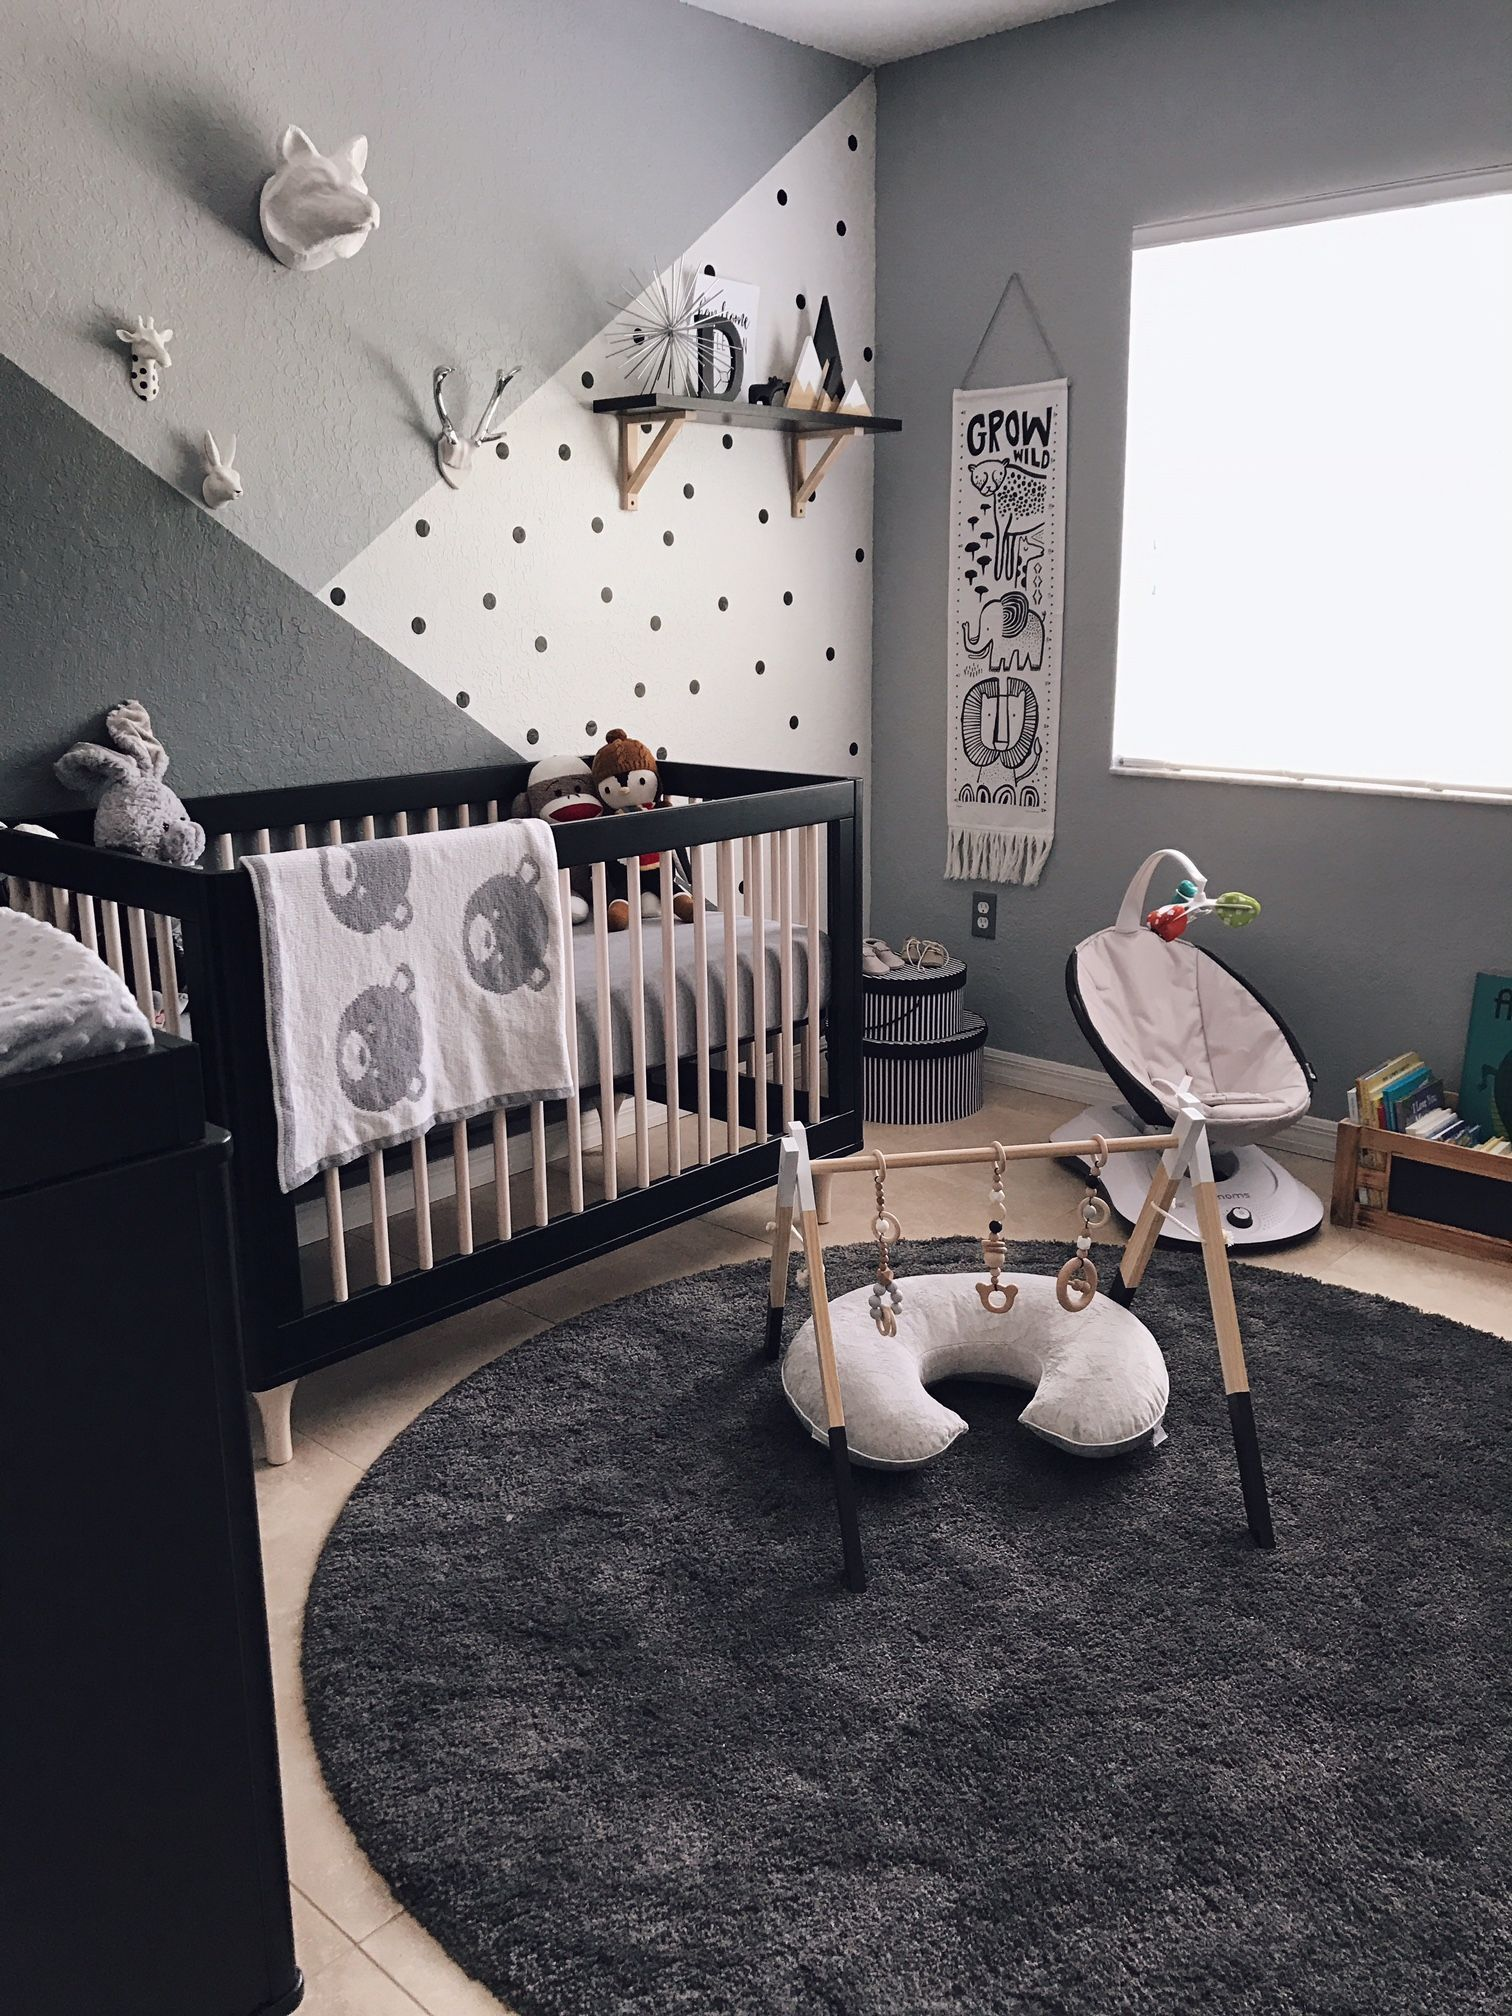 20 Creative Baby Room Themes With